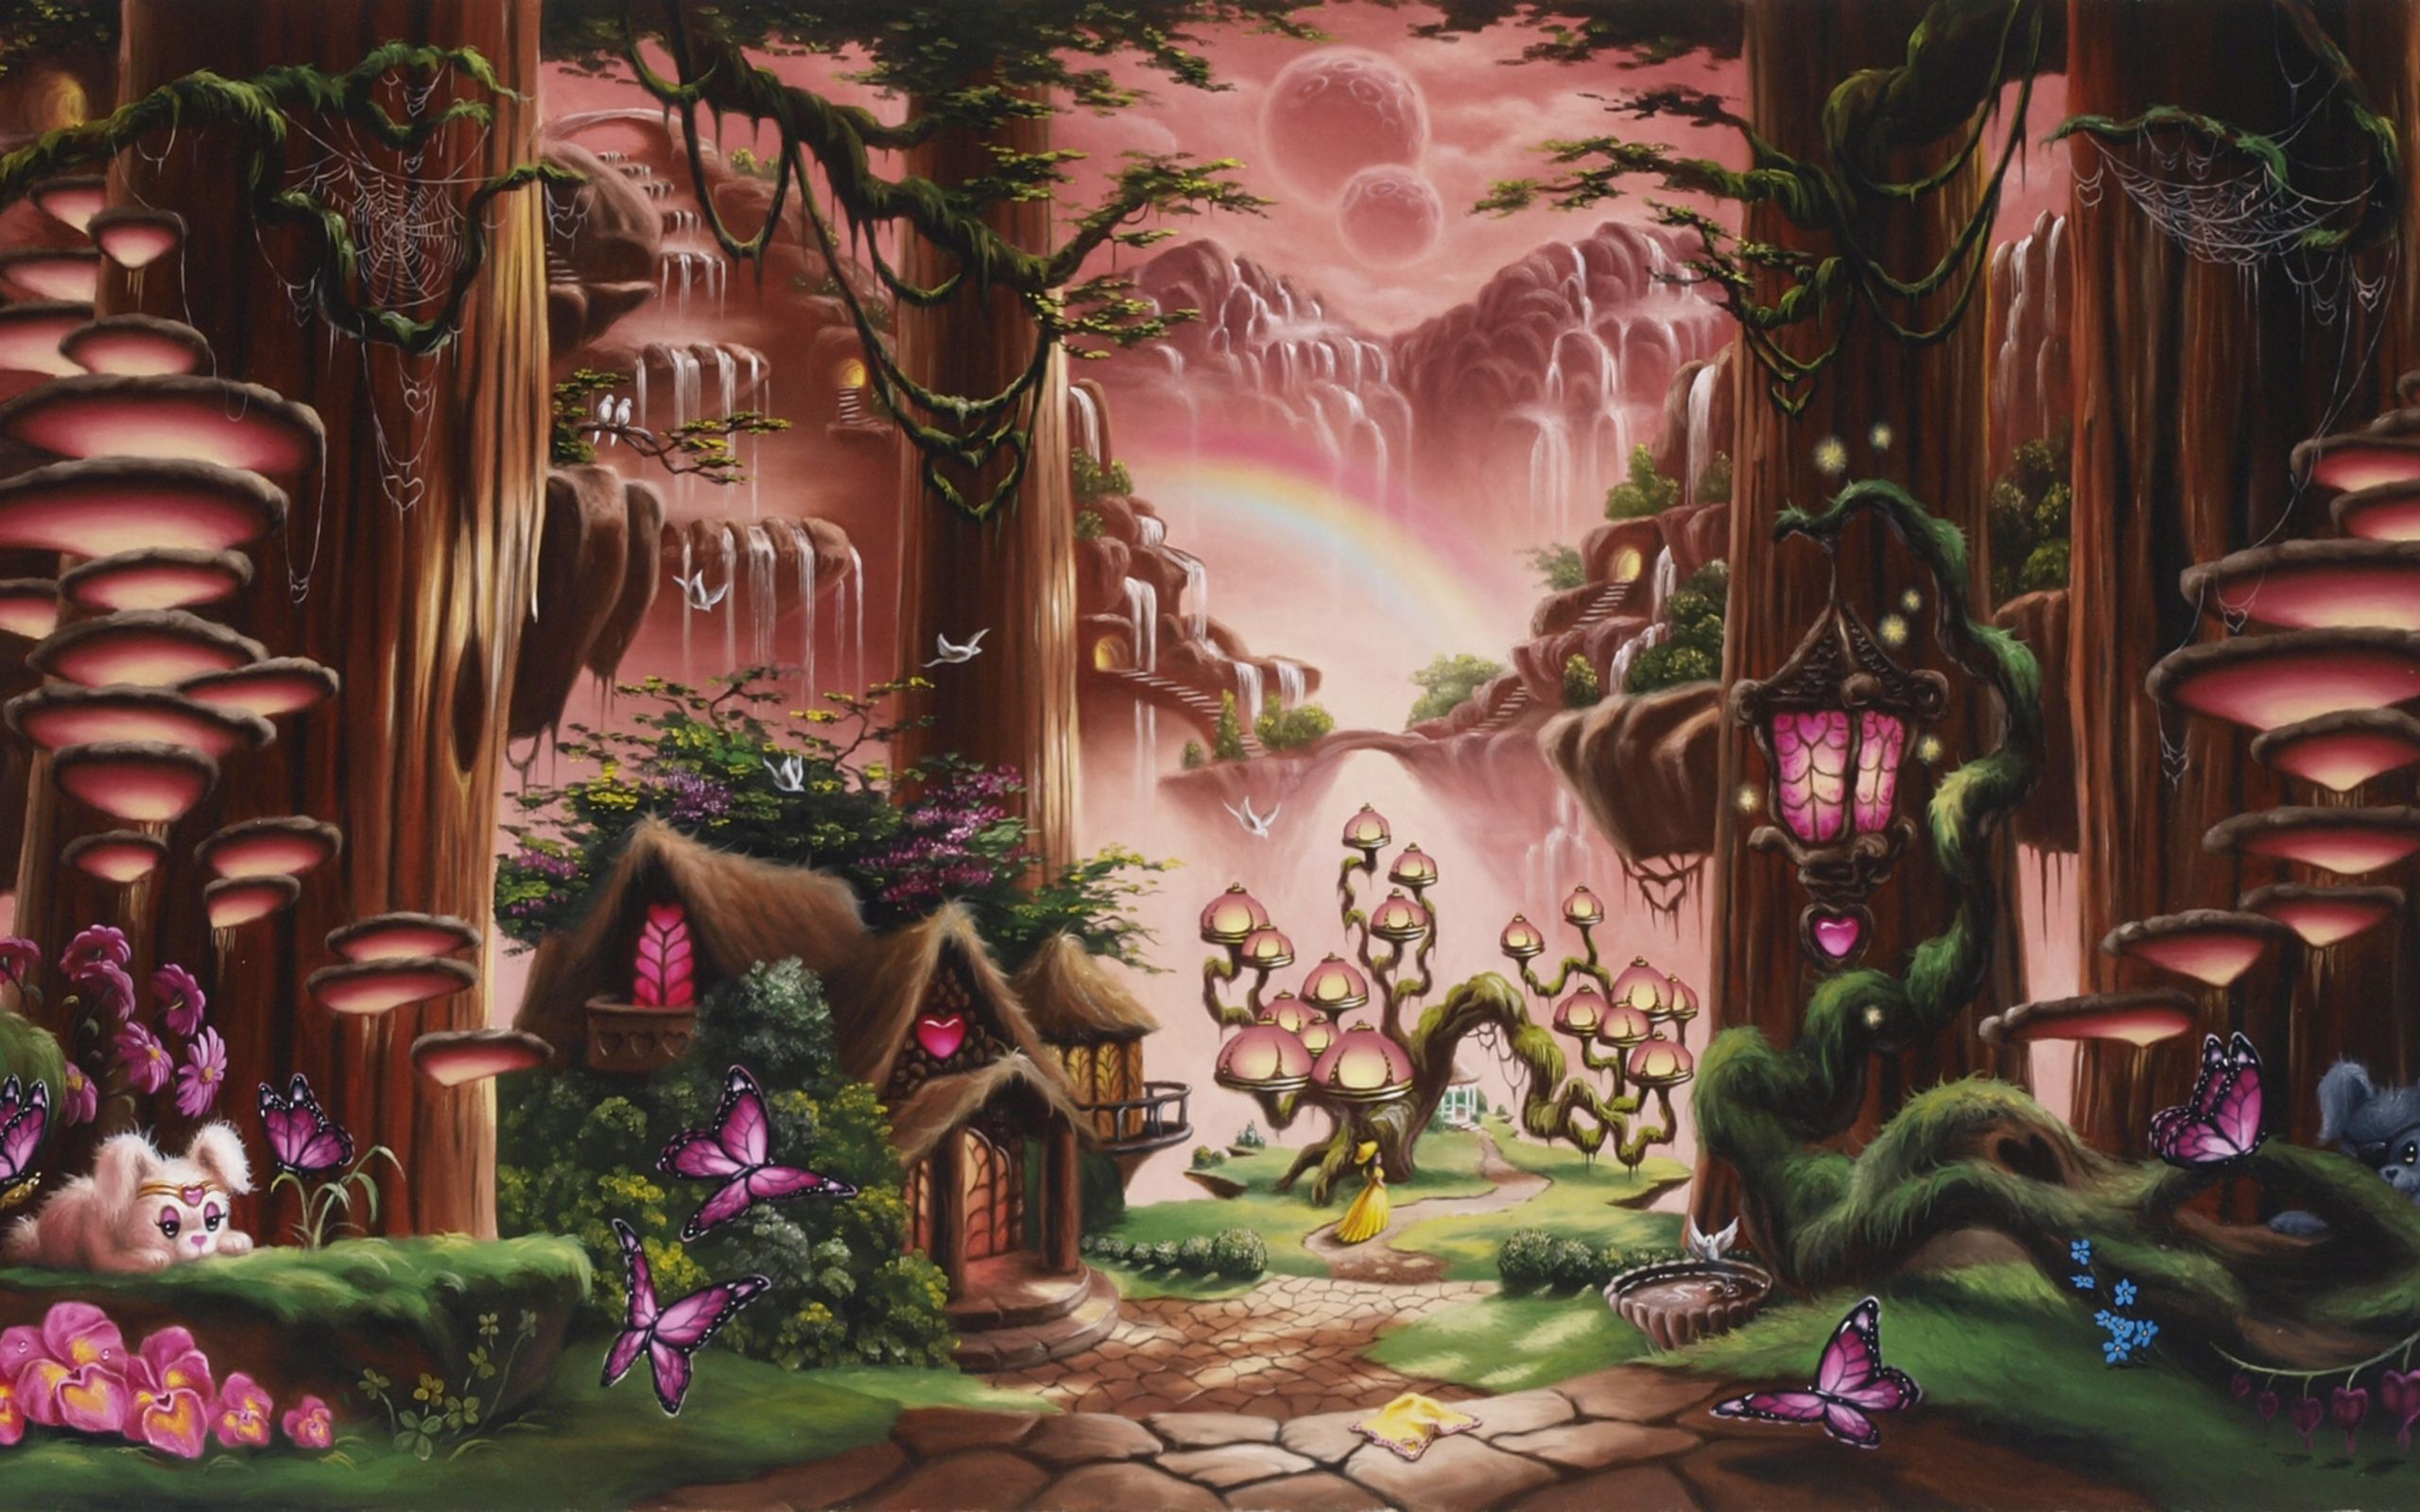 Fairy Tales Animation Pictures Fantasy Fairy Tale Art Magic Cartoon Trees Forest Cute Kids Children Fantasy Art Landscapes Fairytale Art Fairy Wallpaper